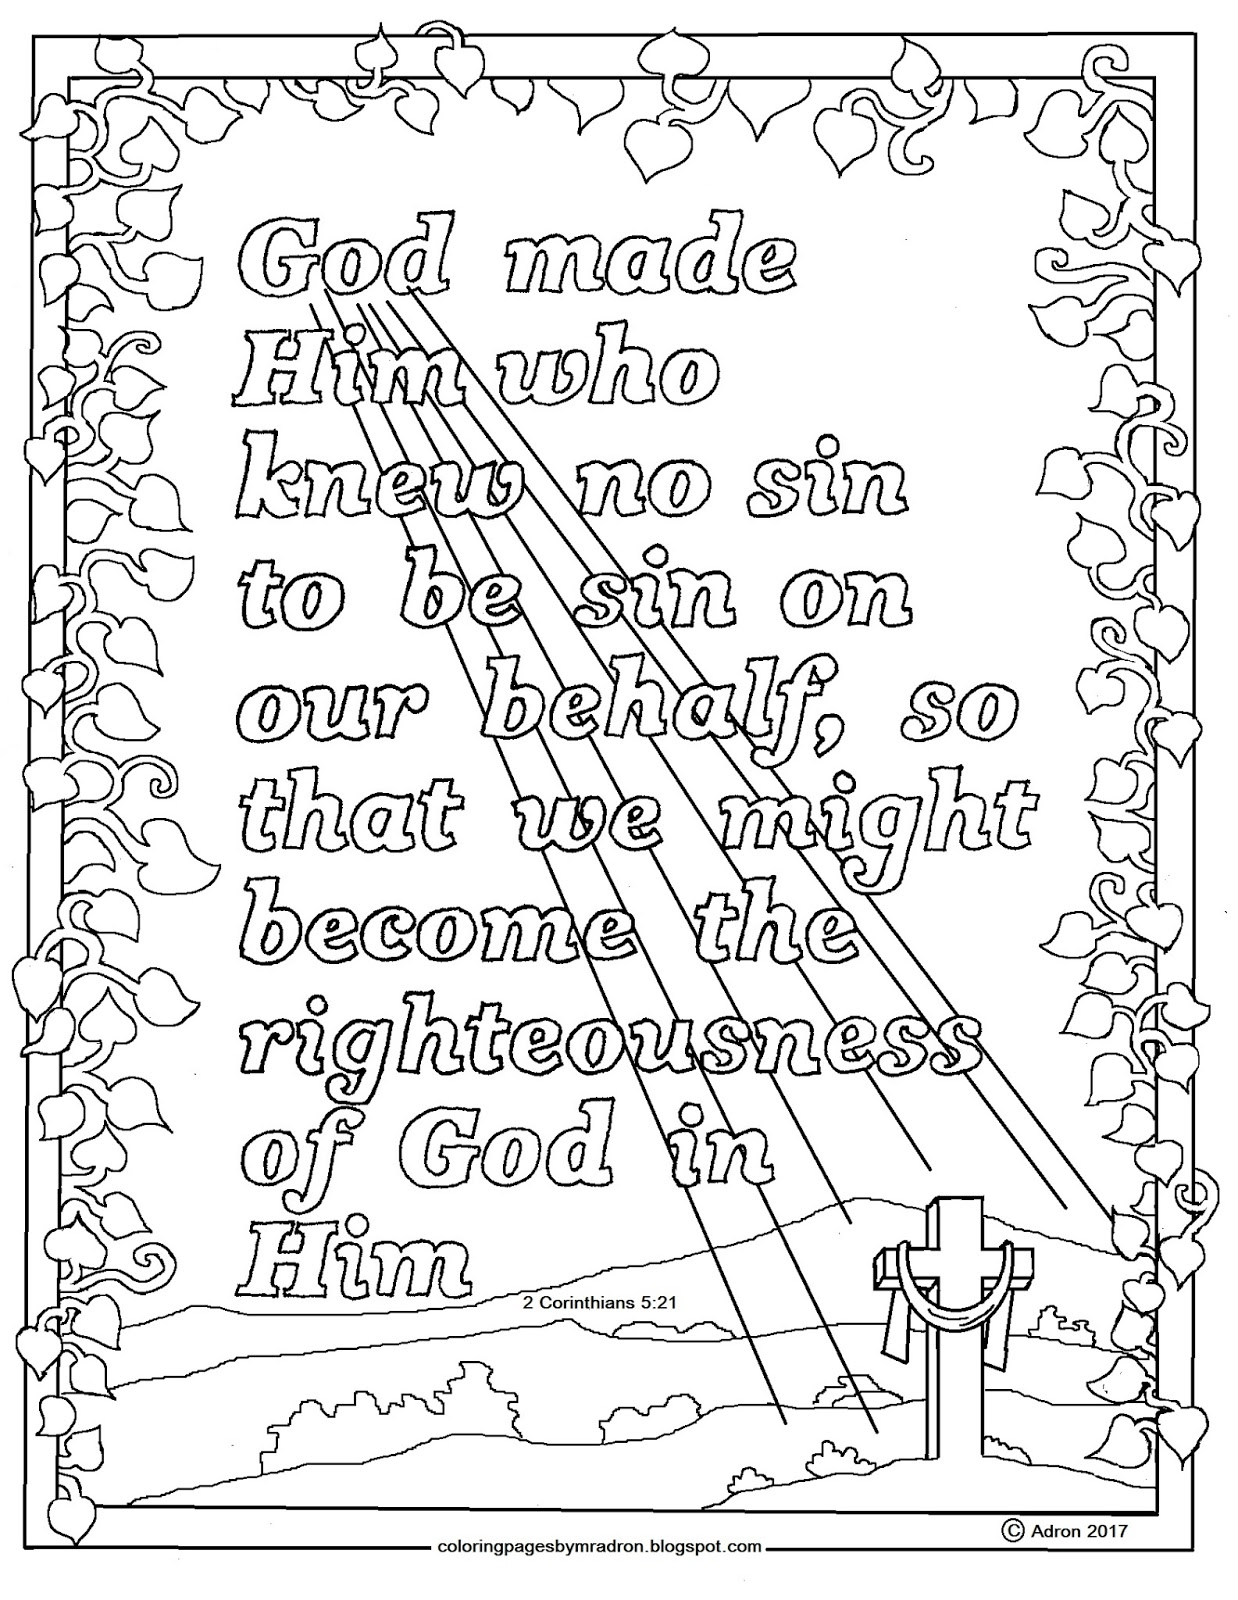 Coloring Pages For Kids By Mr Adron 2 Corinthians 5 21 Print And Color Page God Made Him To